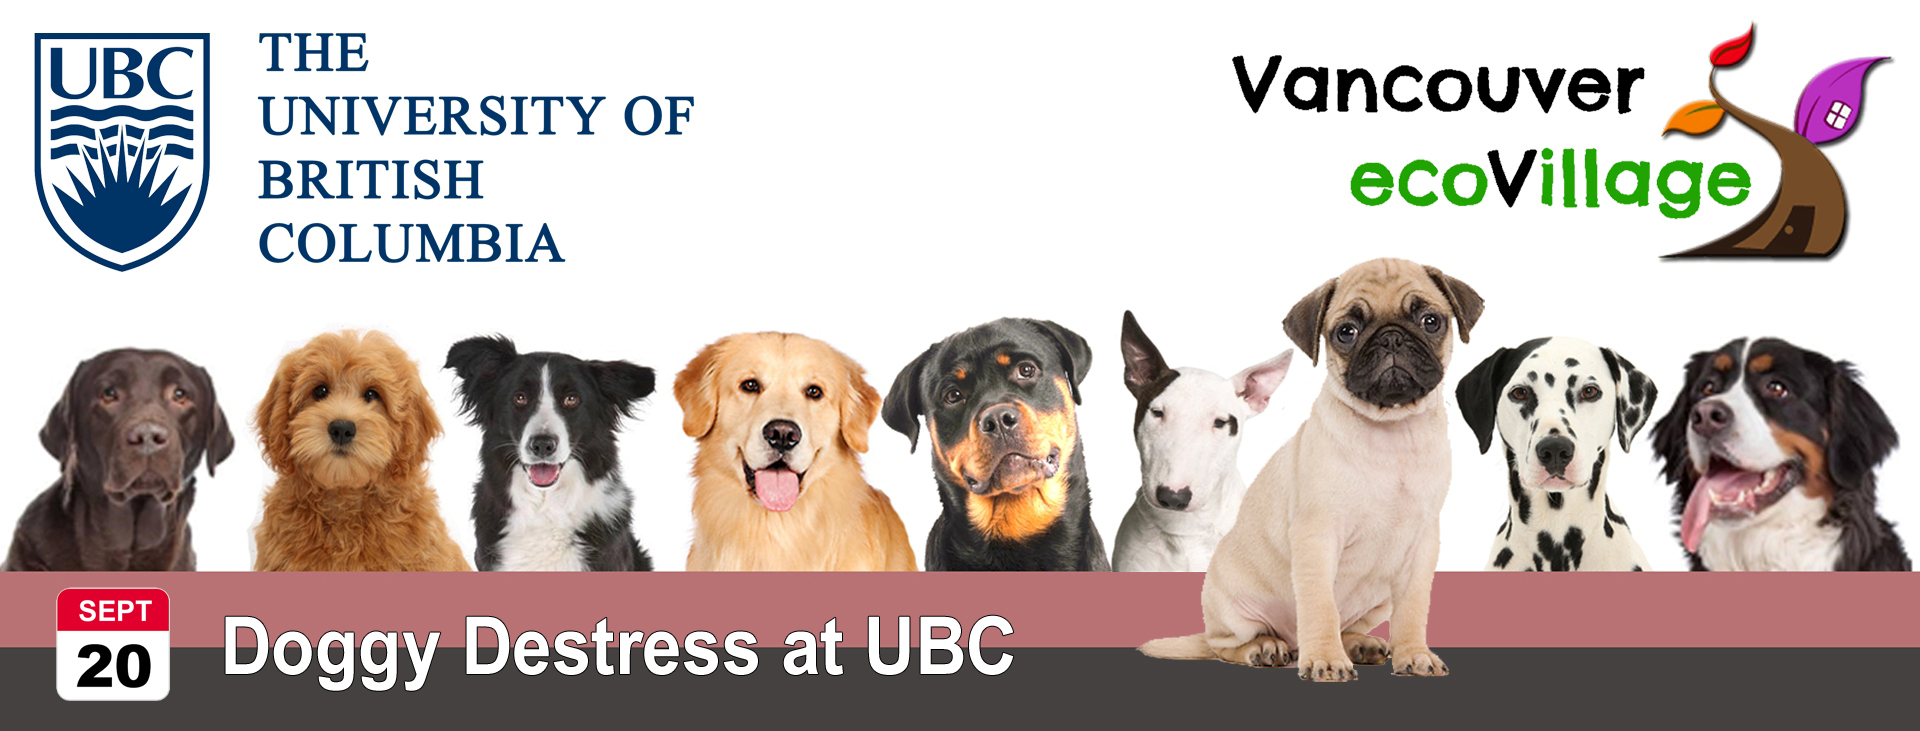 Doggy Destress at UBC